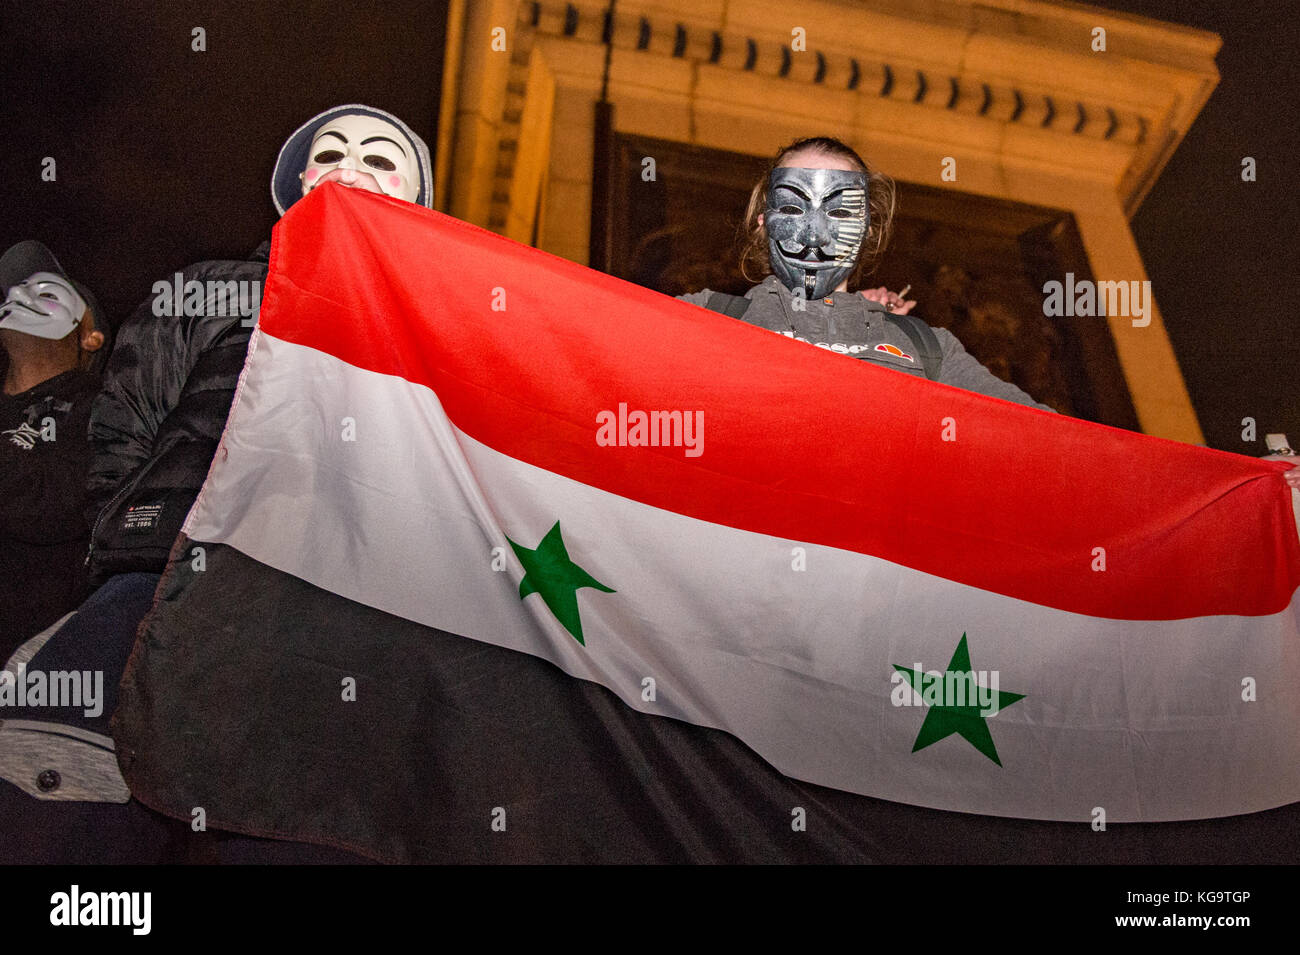 London, United Kingdom. 05th Nov, 2017. Million Mask March 2017 takes place in central London. Credit: Peter Manning/Alamy - Stock Image